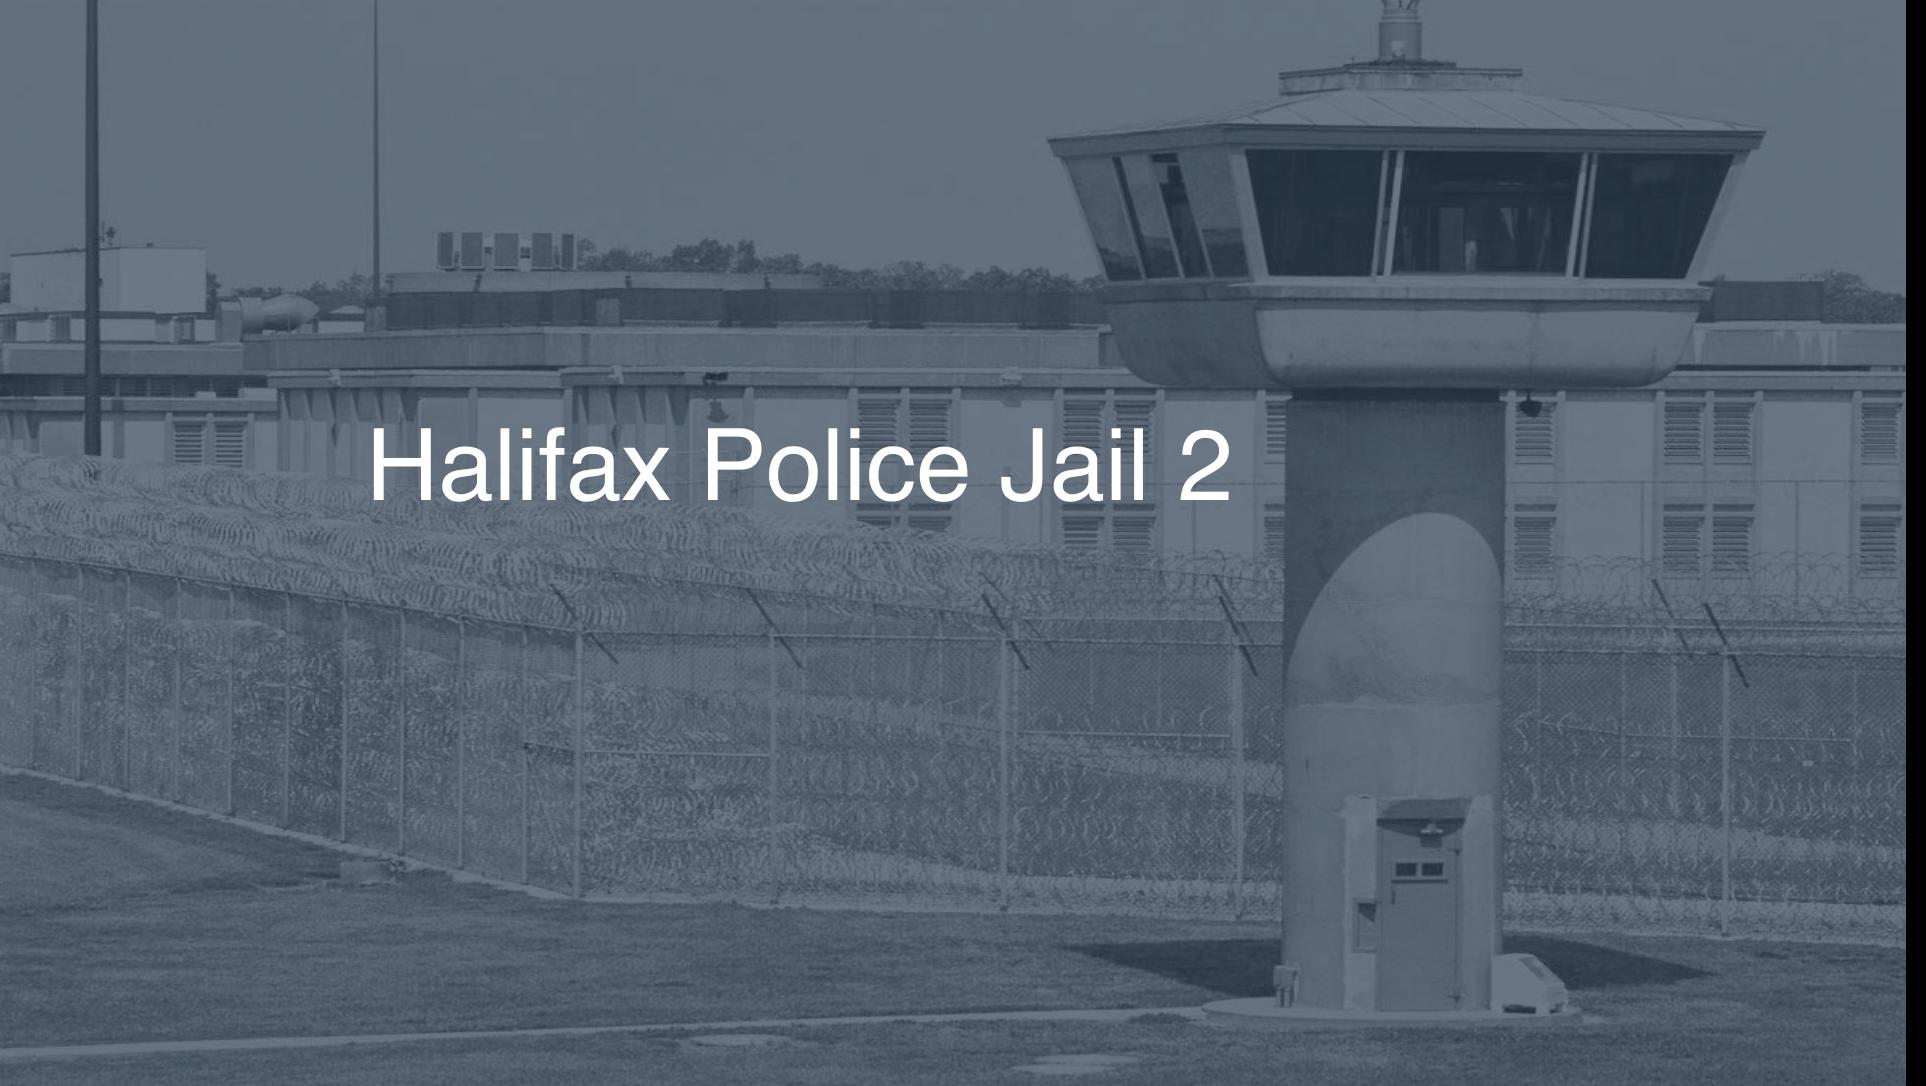 Halifax Police Jail correctional facility picture